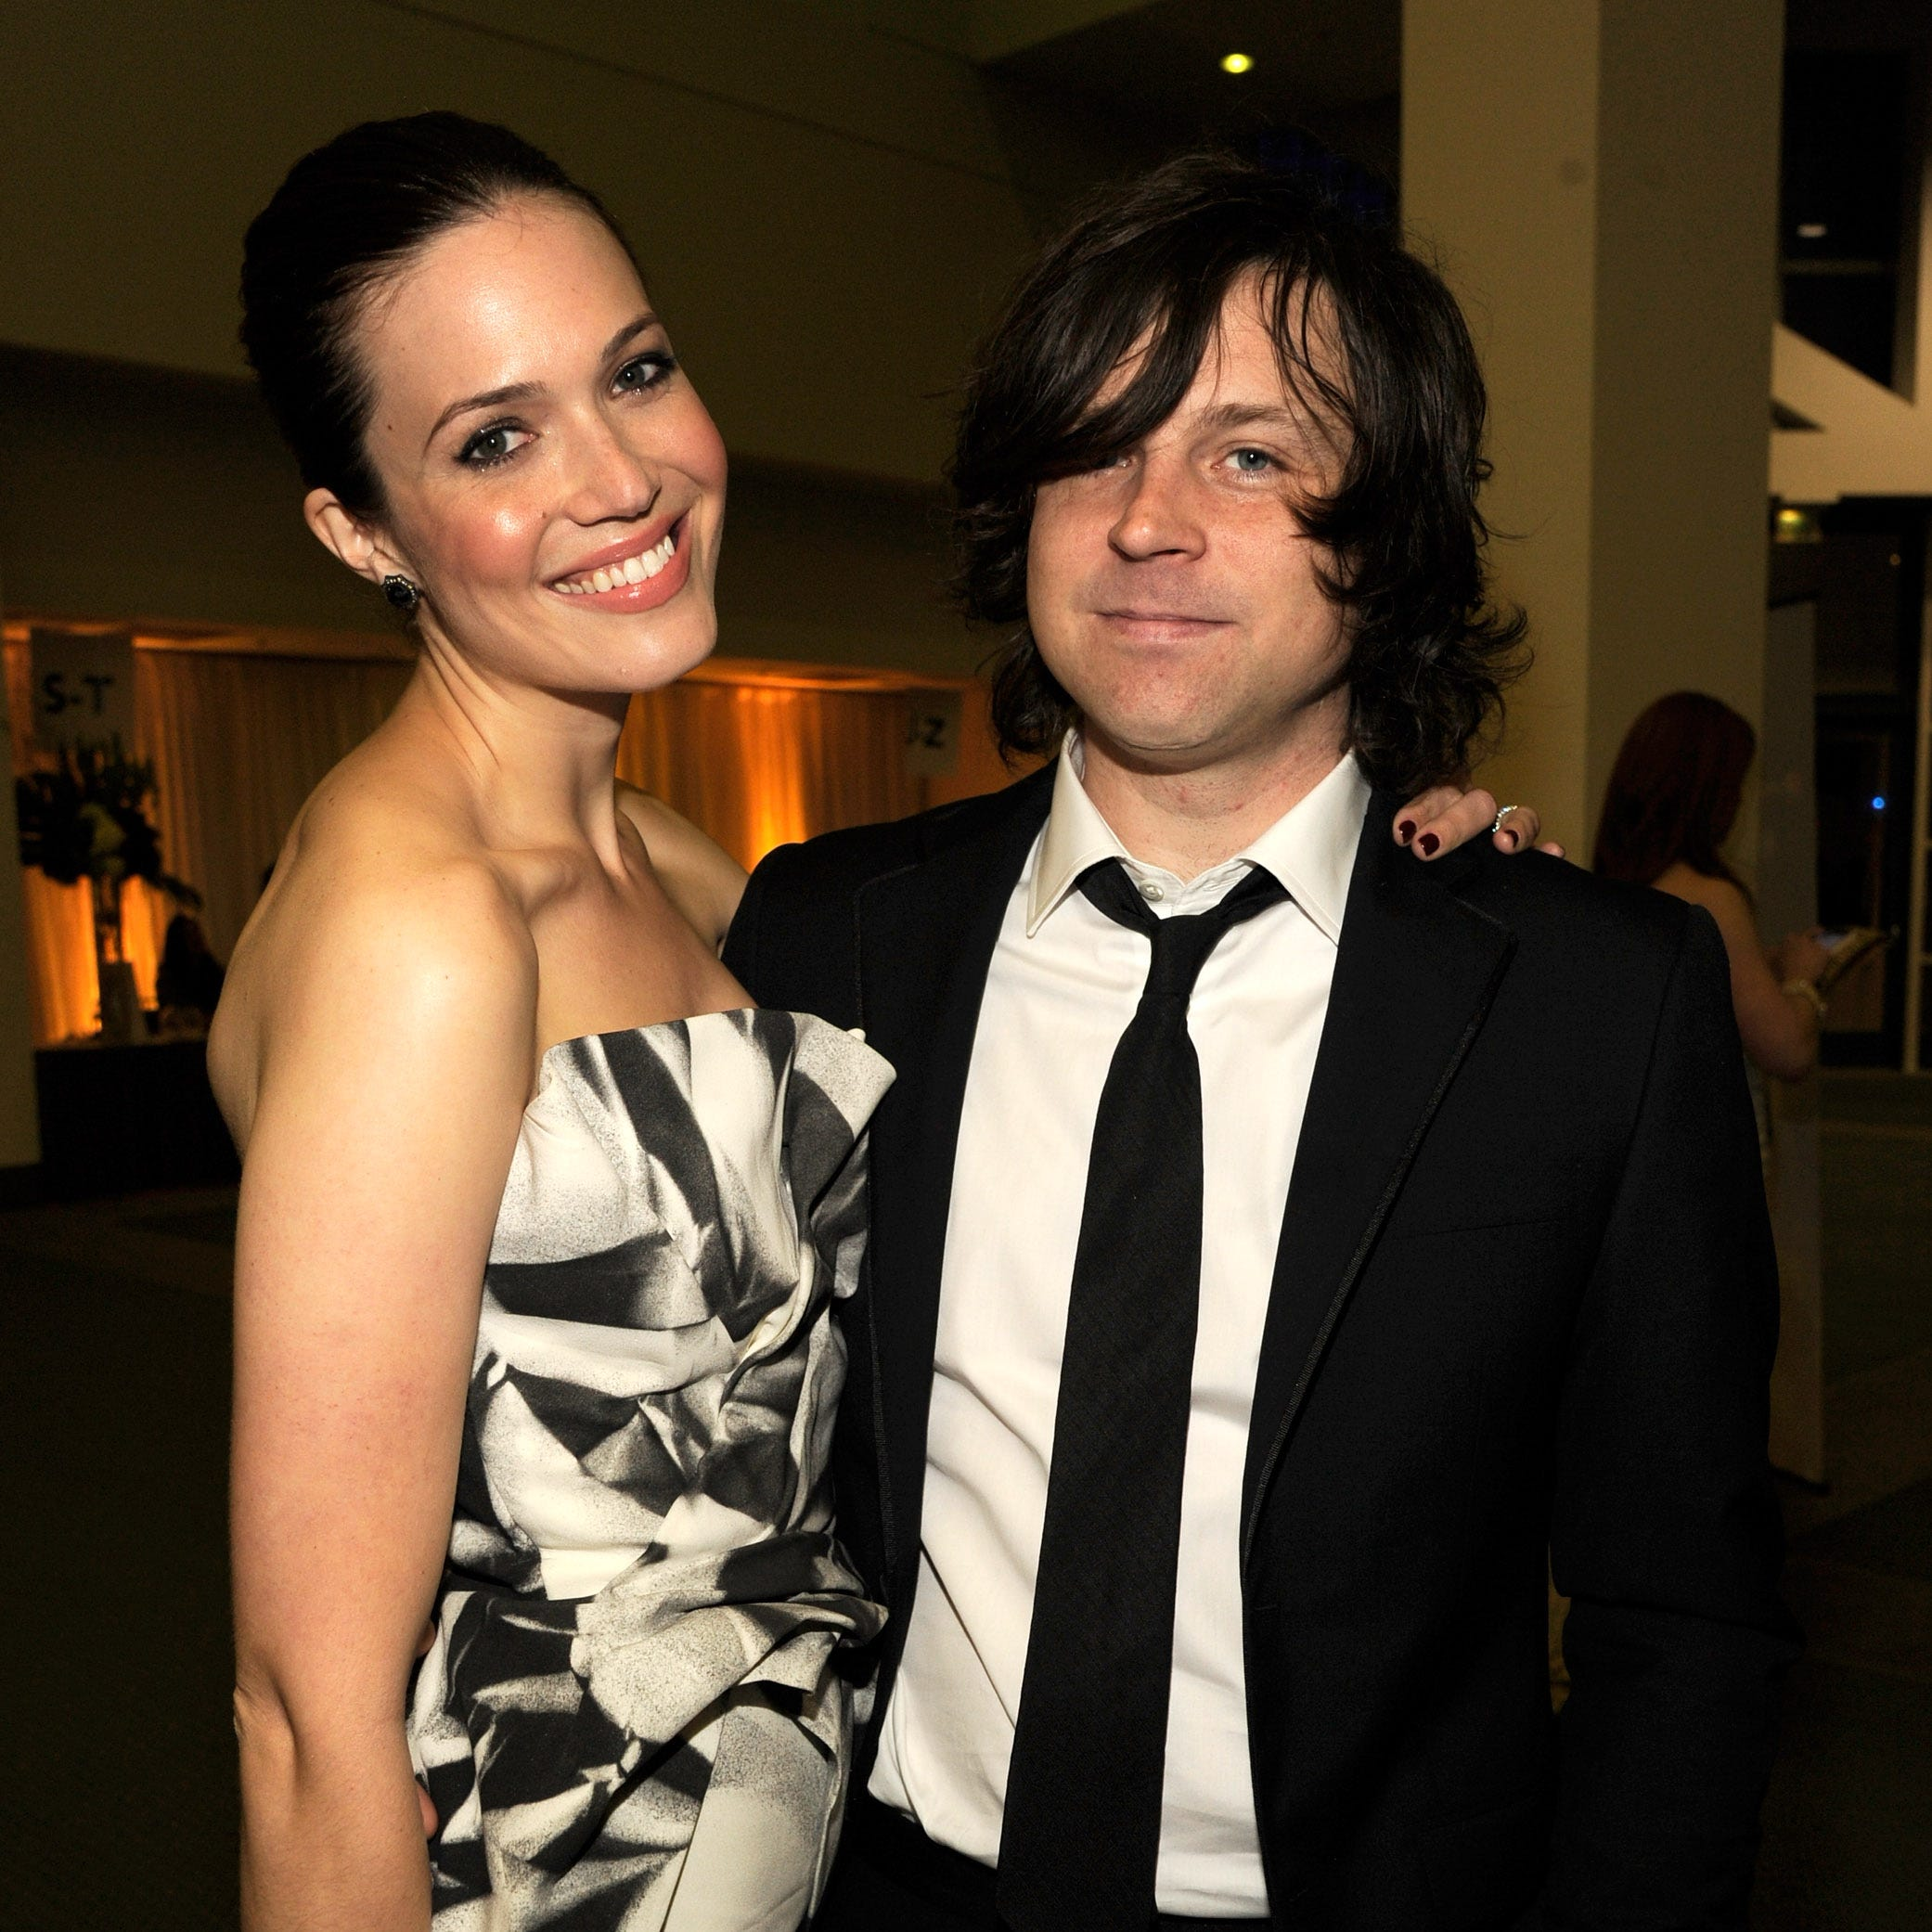 Mandy Moore speaks out about ex-husband Ryan Adams' 'controlling behavior'